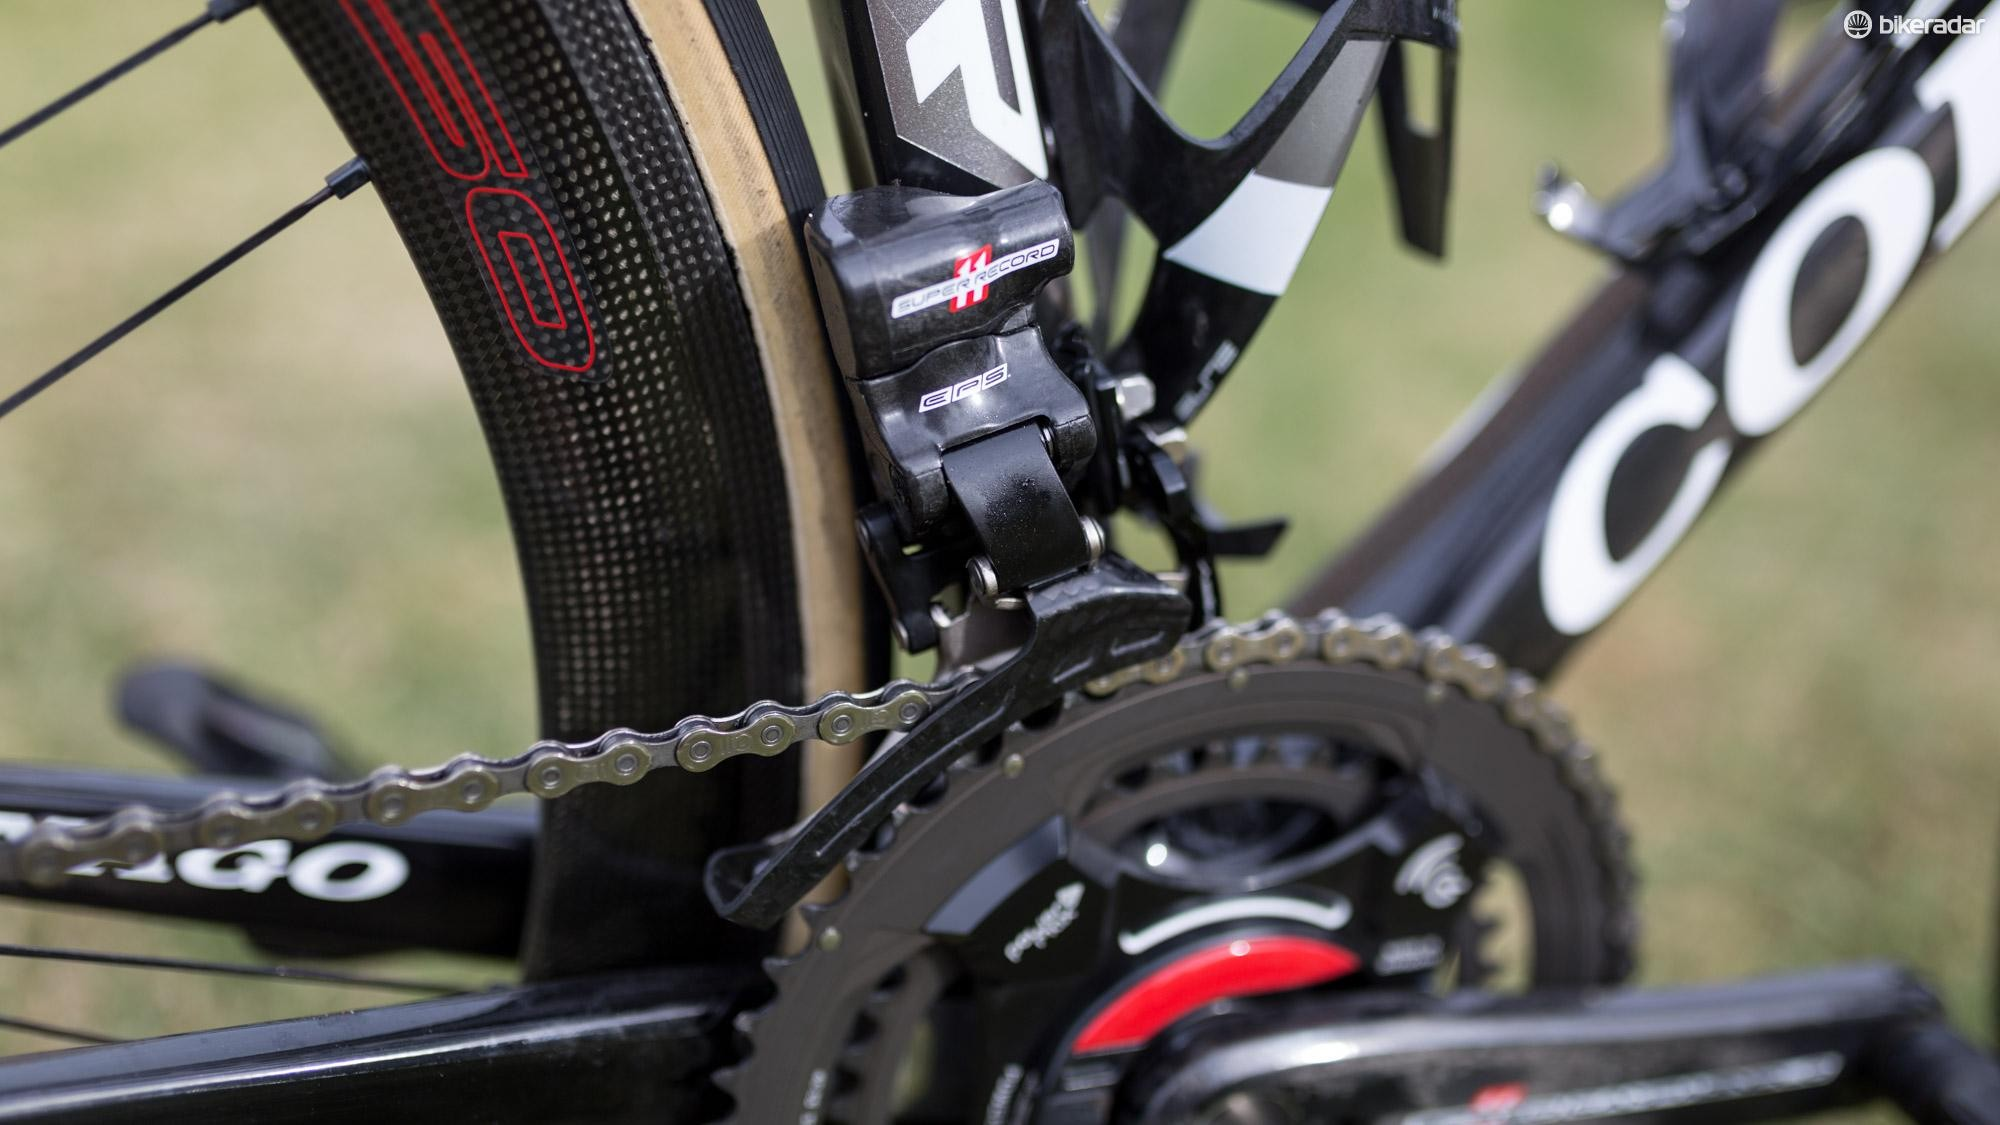 A closer look at the Campagnolo Super Record EPS front derailleur